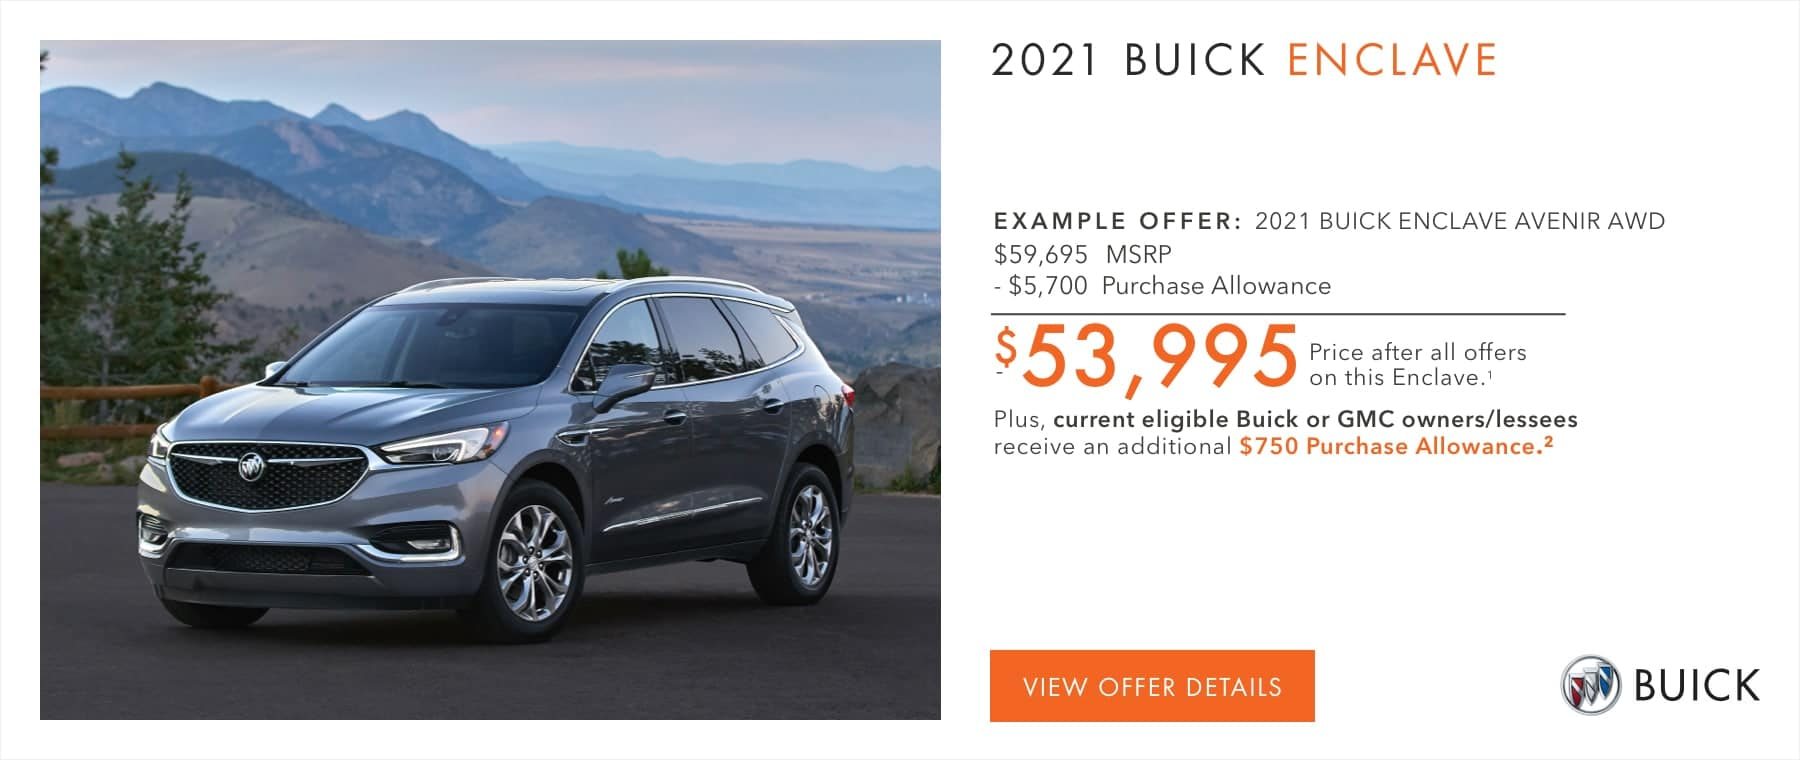 $53,995 Price after all offers on this Enclave.1 Plus, current eligible Buick or GMC owners/lessees receive an additional $750 Purchase Allowance.2